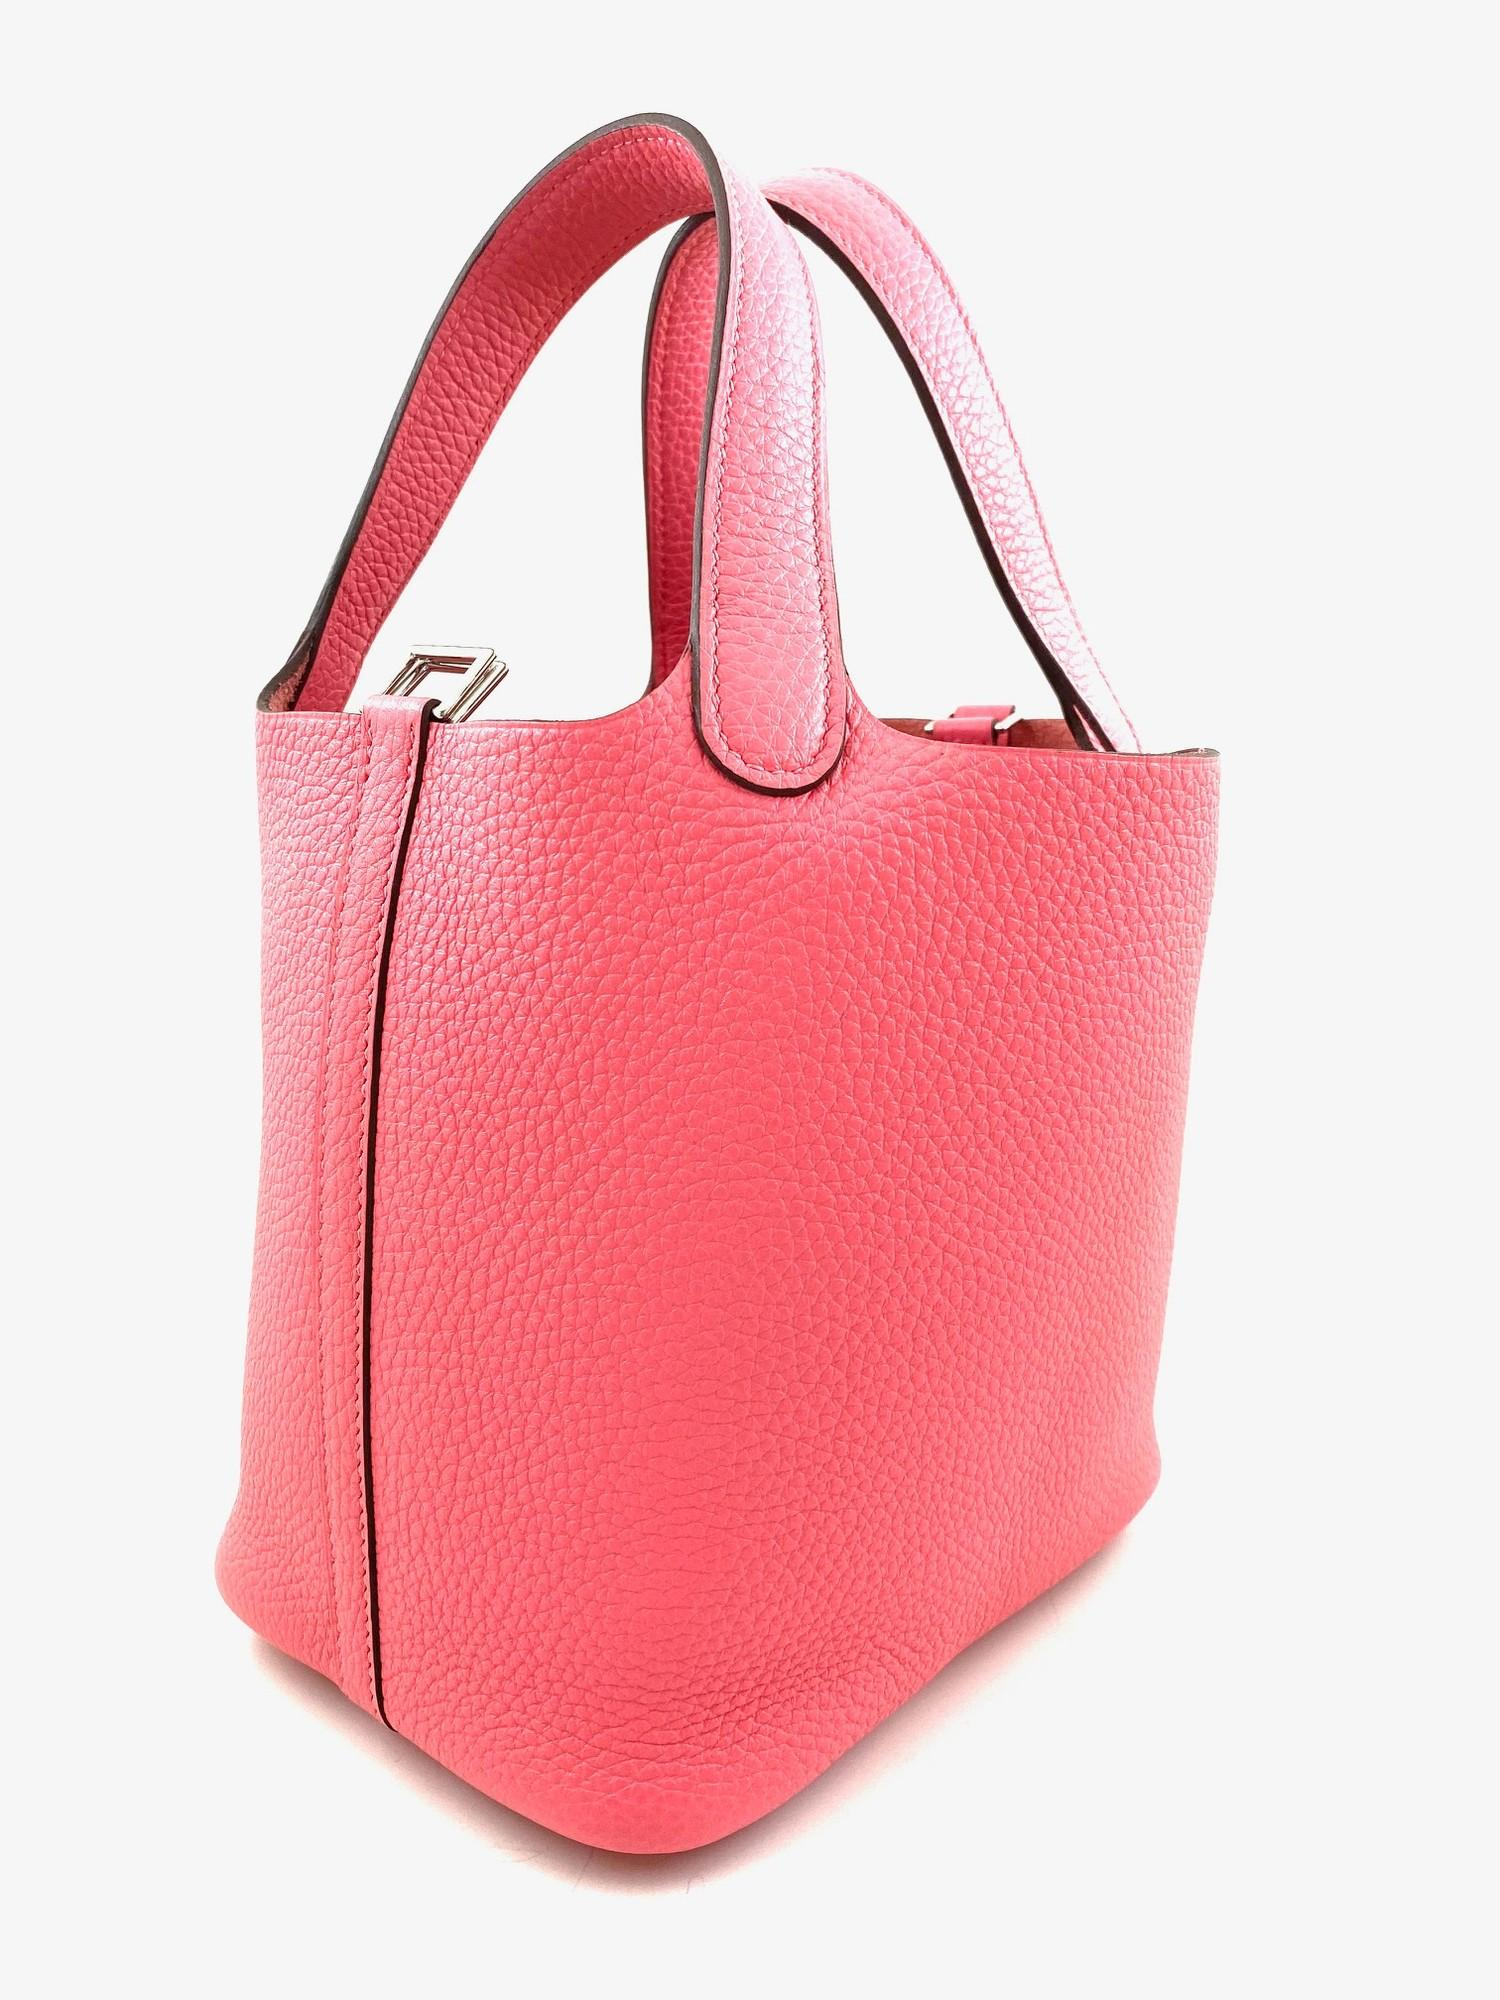 A Rose Azalee Hermes Picotin 18cm in clemence leather with palladium hardware. Includes Box, Dustbag - Image 4 of 5